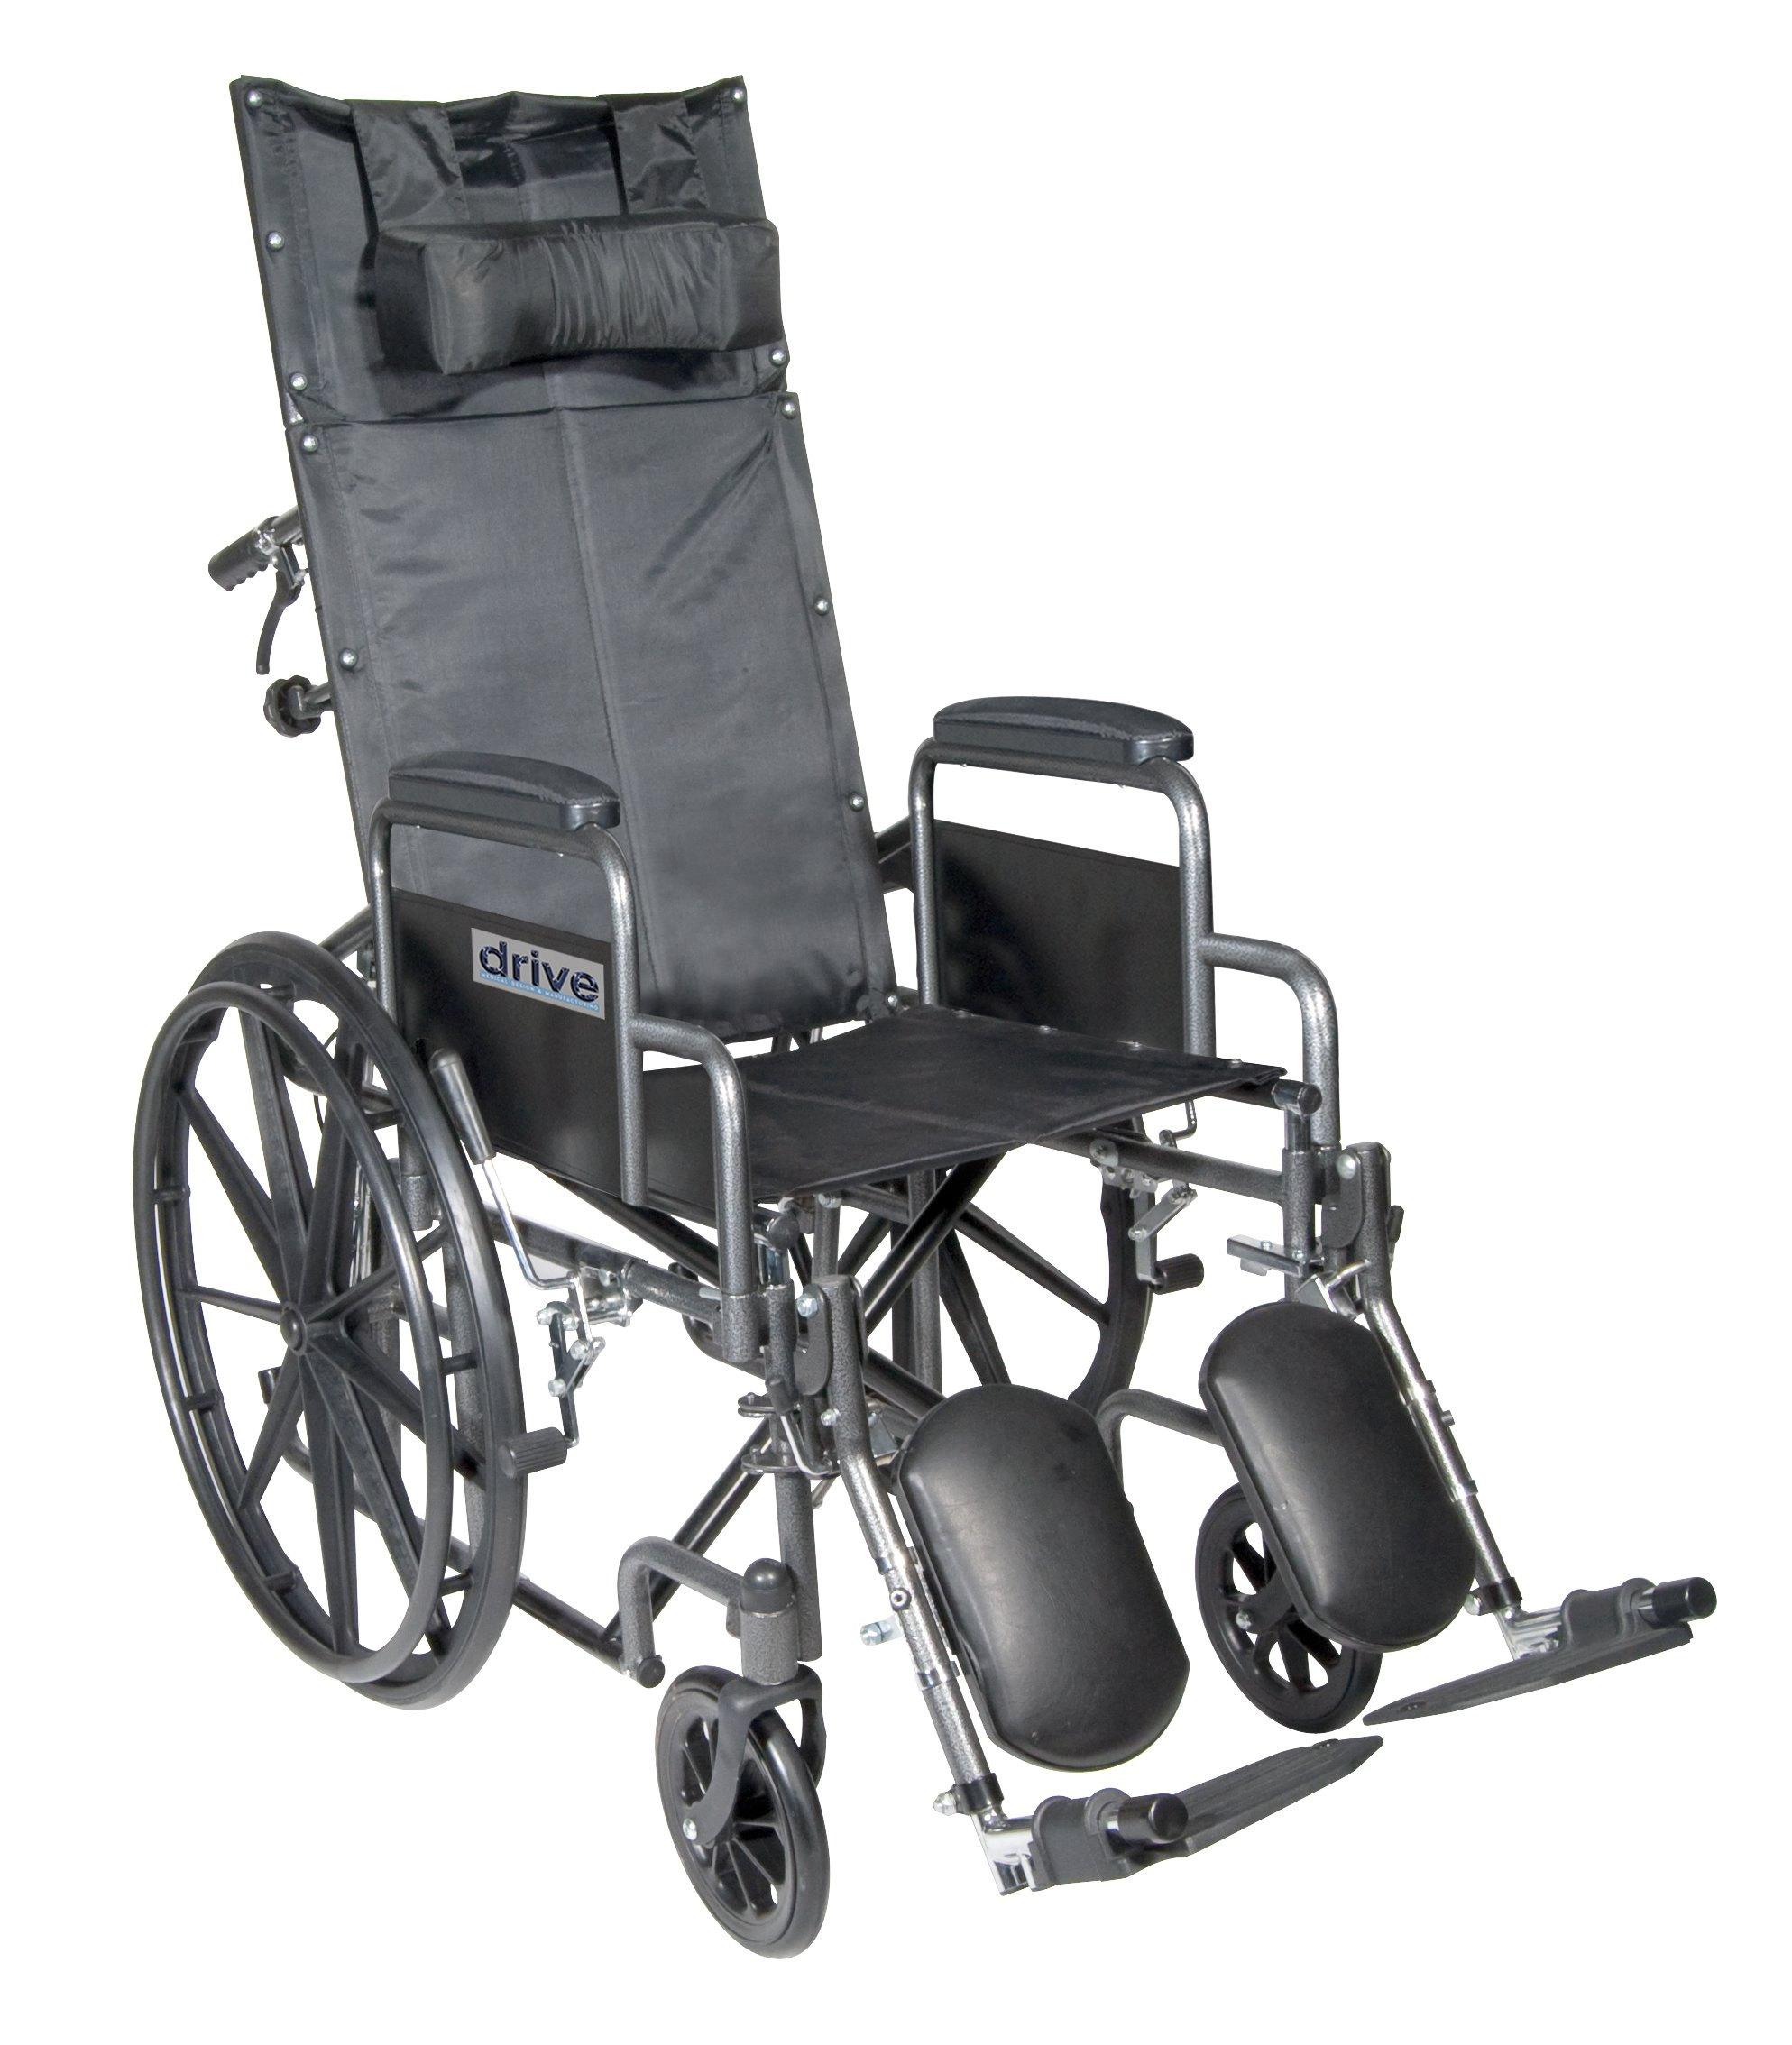 Drive Medical SSP20RBDDA Silver Sport Reclining Wheelchair with Detachable Desk Length Arms and Elevating Leg Rest, Silver Vein by Drive Medical